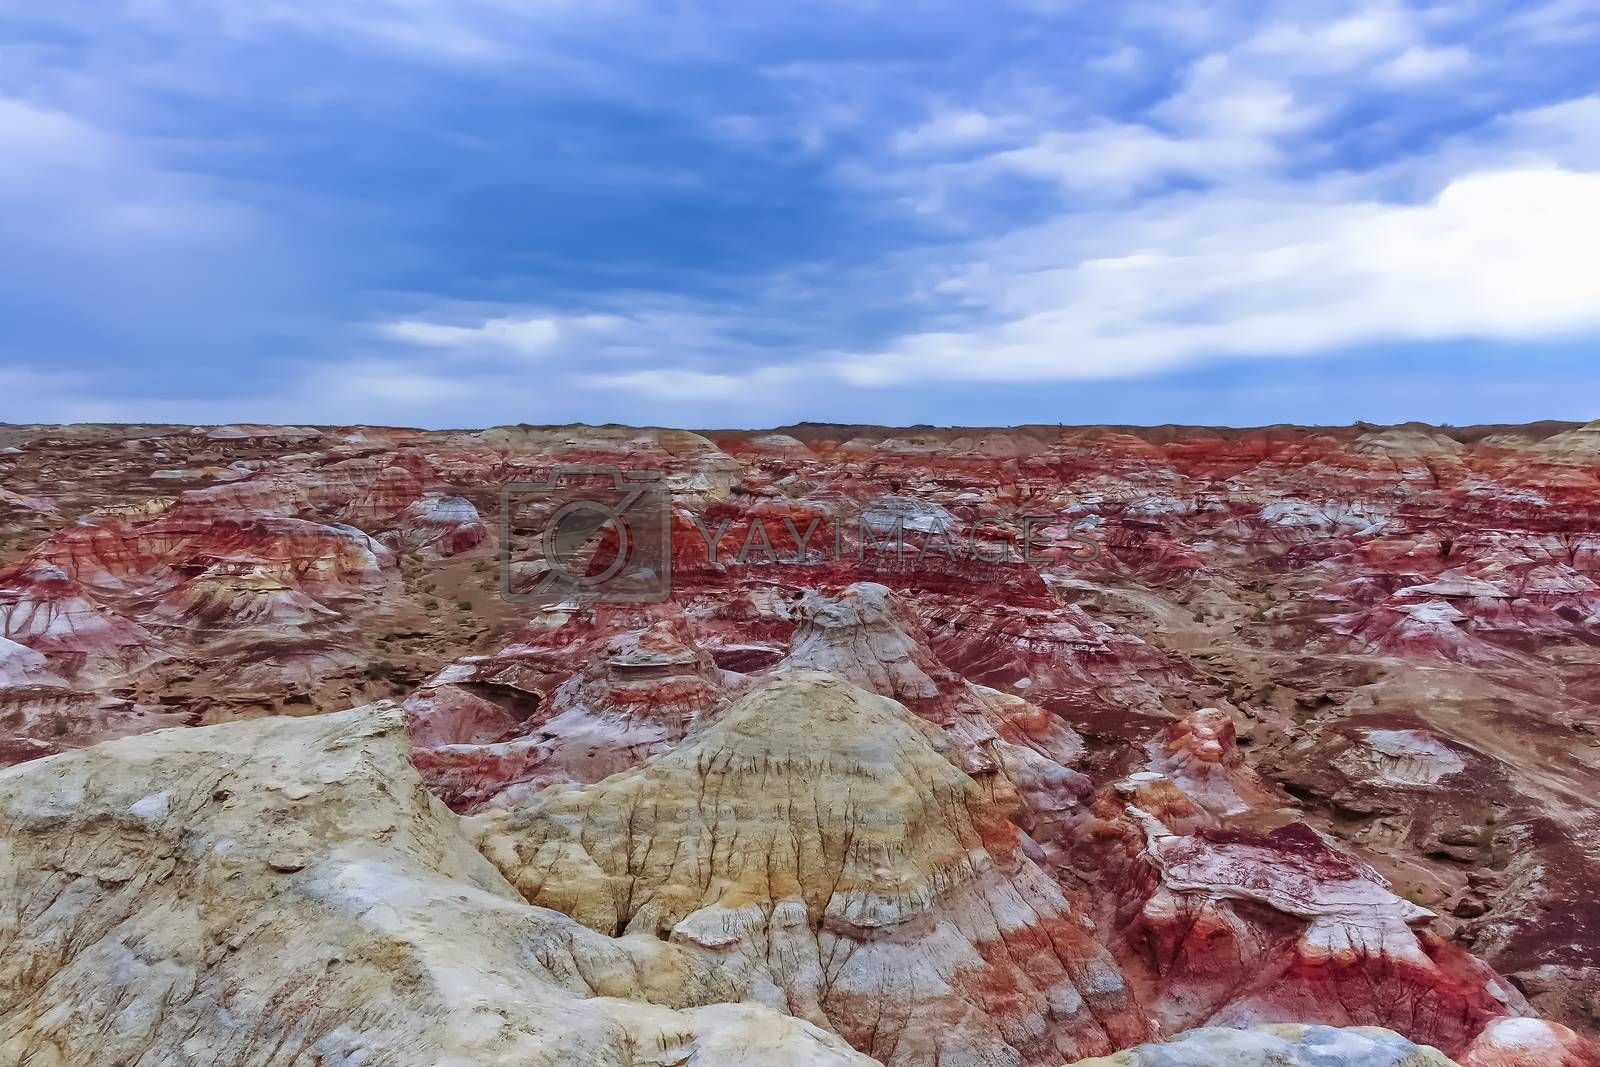 Colored rock formation against blue sky at Wucaitan (Five Colored Hills aka Rainbow Beach) in Burqin County, Xinjiang, China